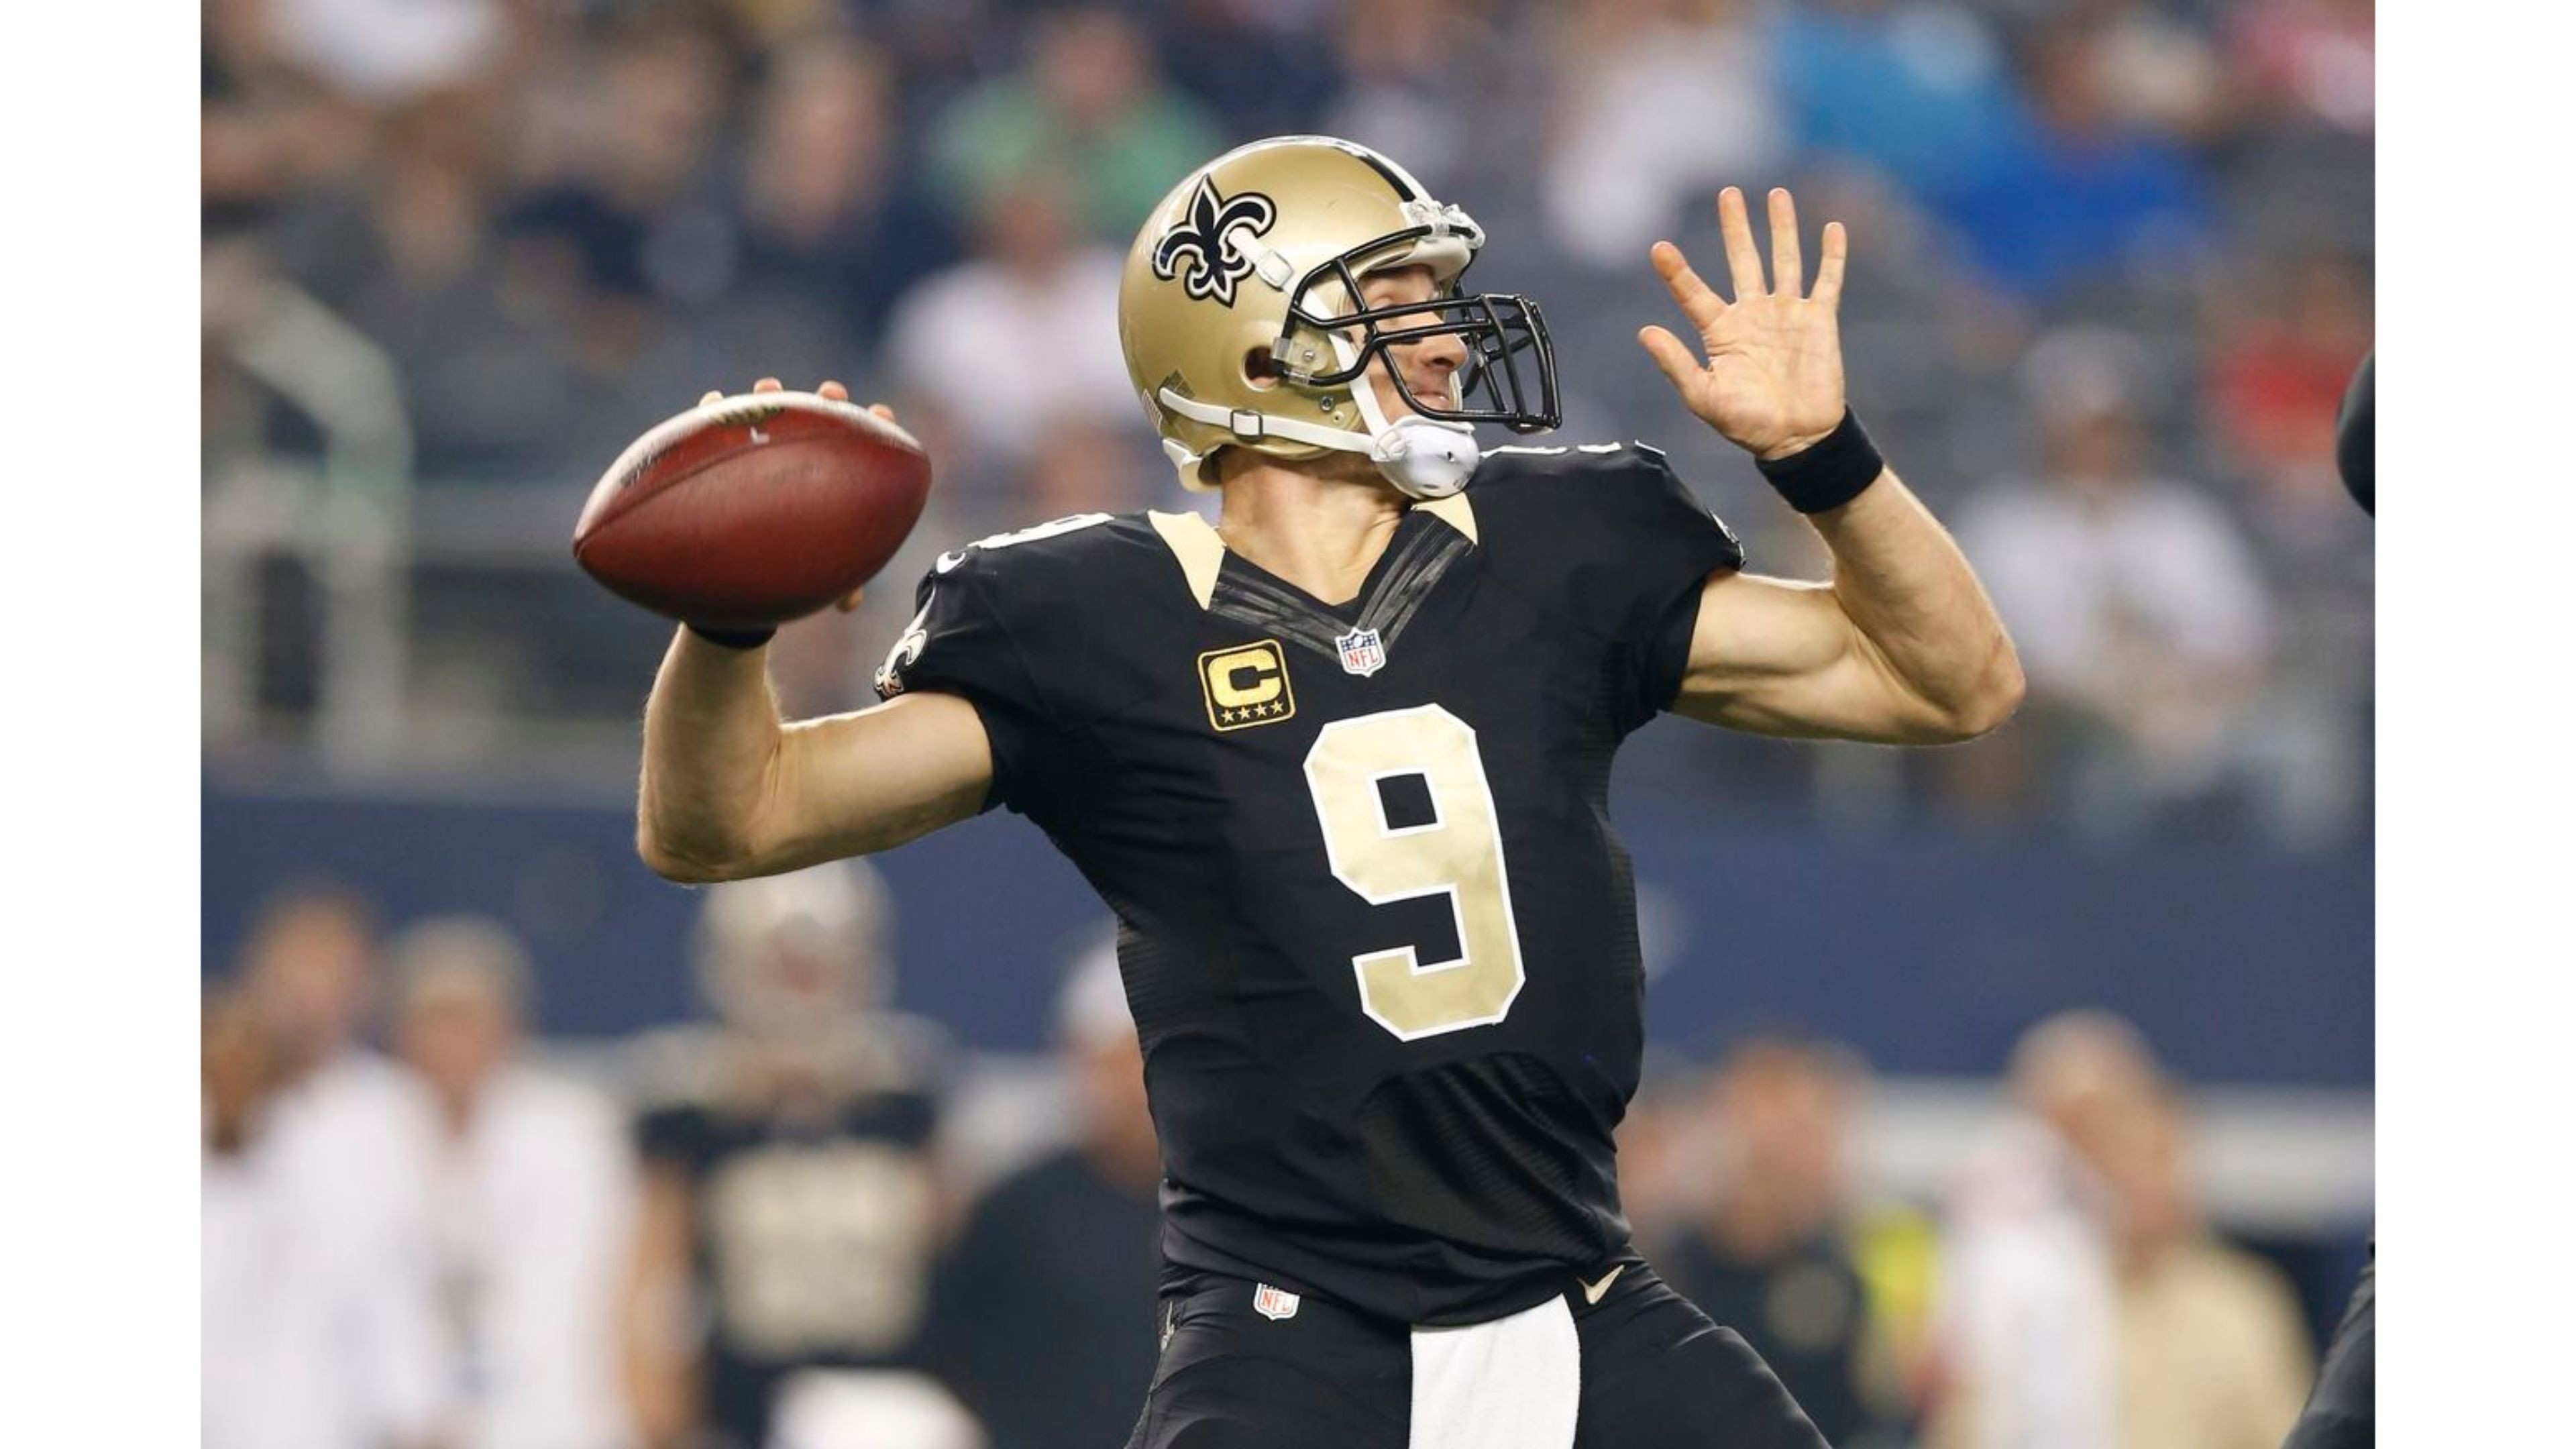 Drew brees Wallpapers Backgrounds Images Best drew